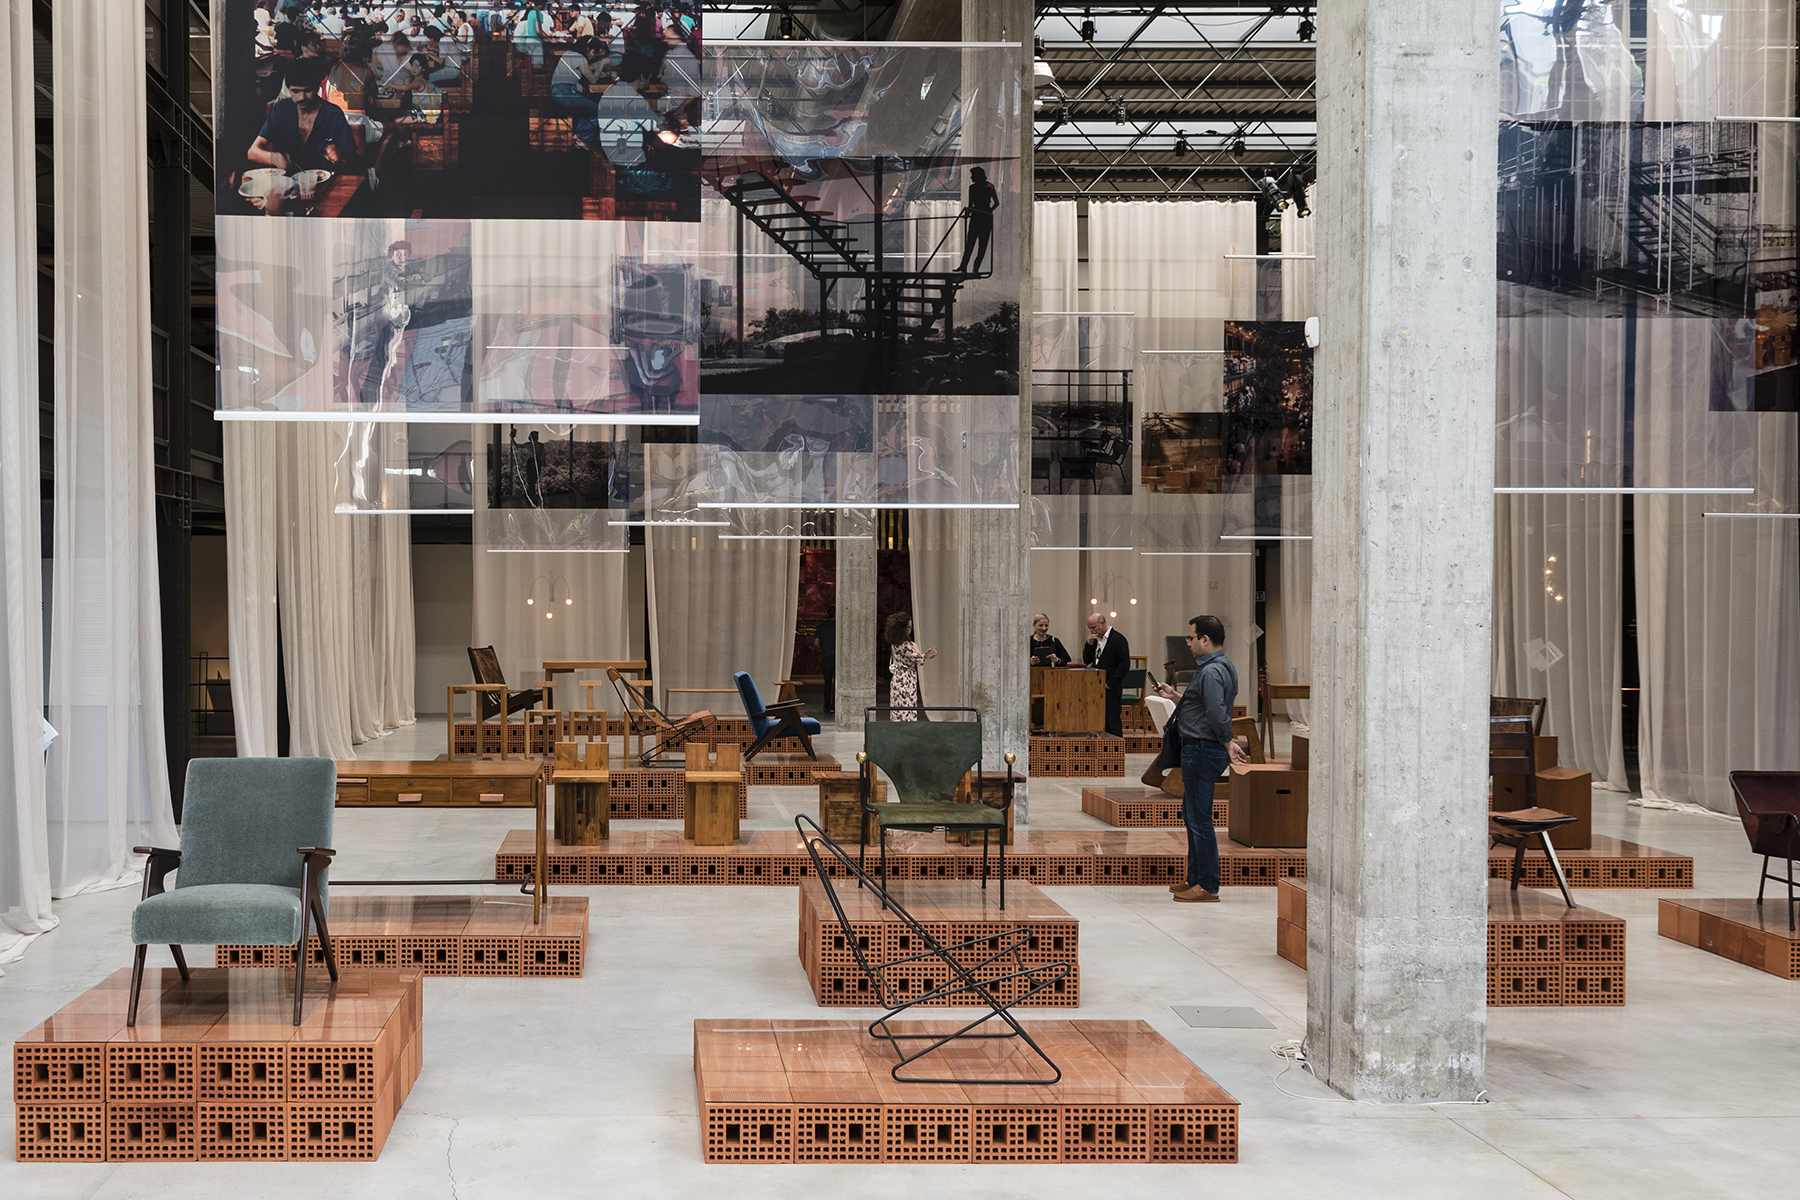 Milano Design Week 2018 – Salone del Mobile e Fuorisalone